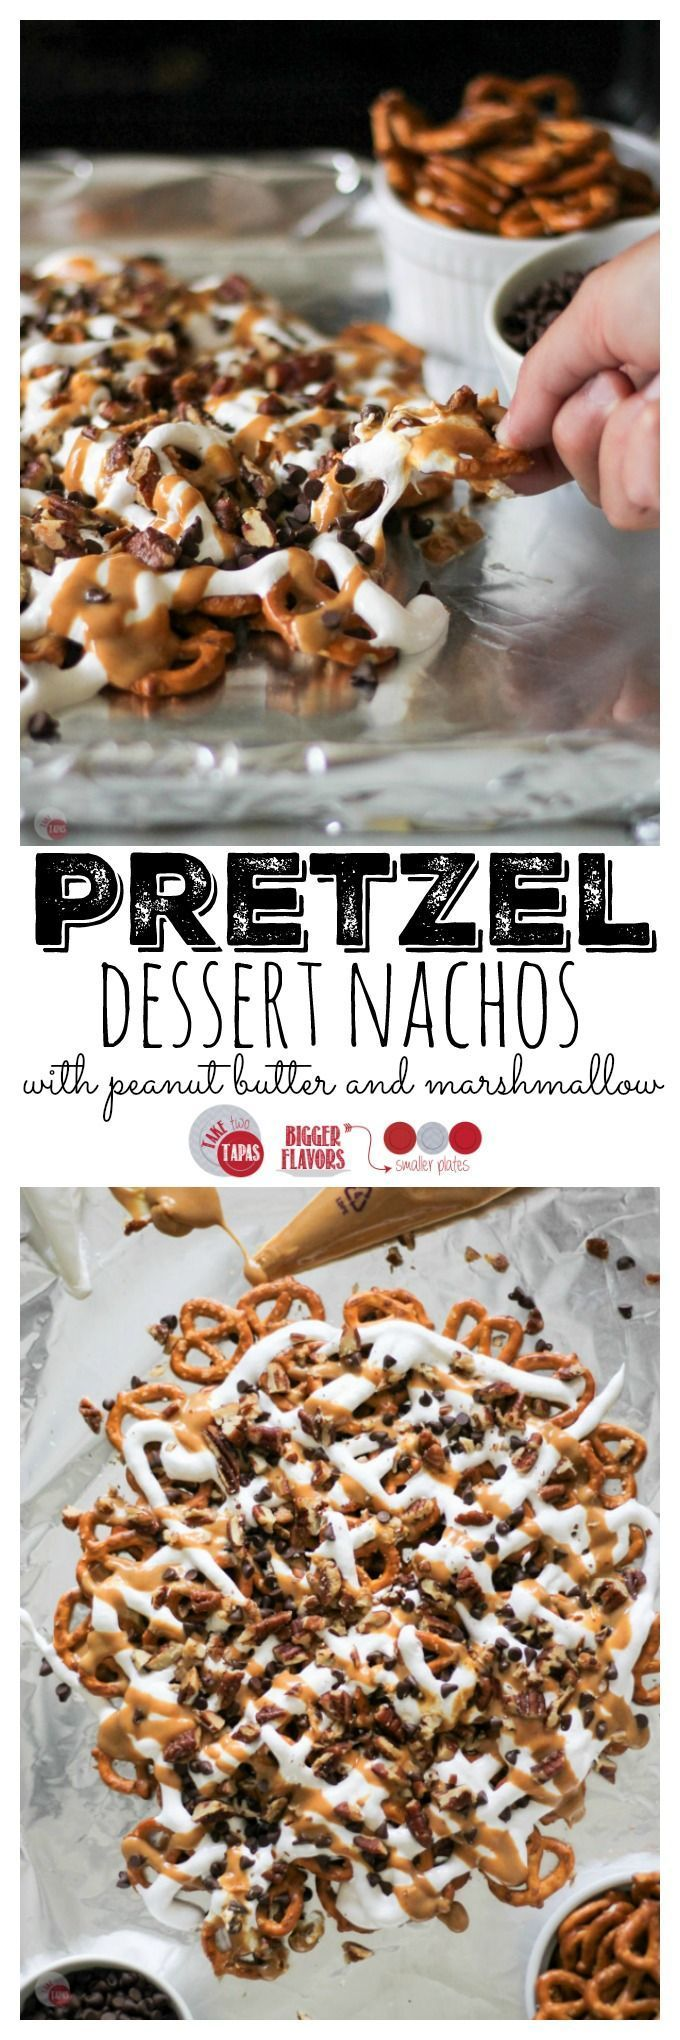 Pretzel Dessert Nachos to Share with Friends!   Yummy! Those are my kind of nachos, and what a wonderful way to use up leftover pretzels.  K...